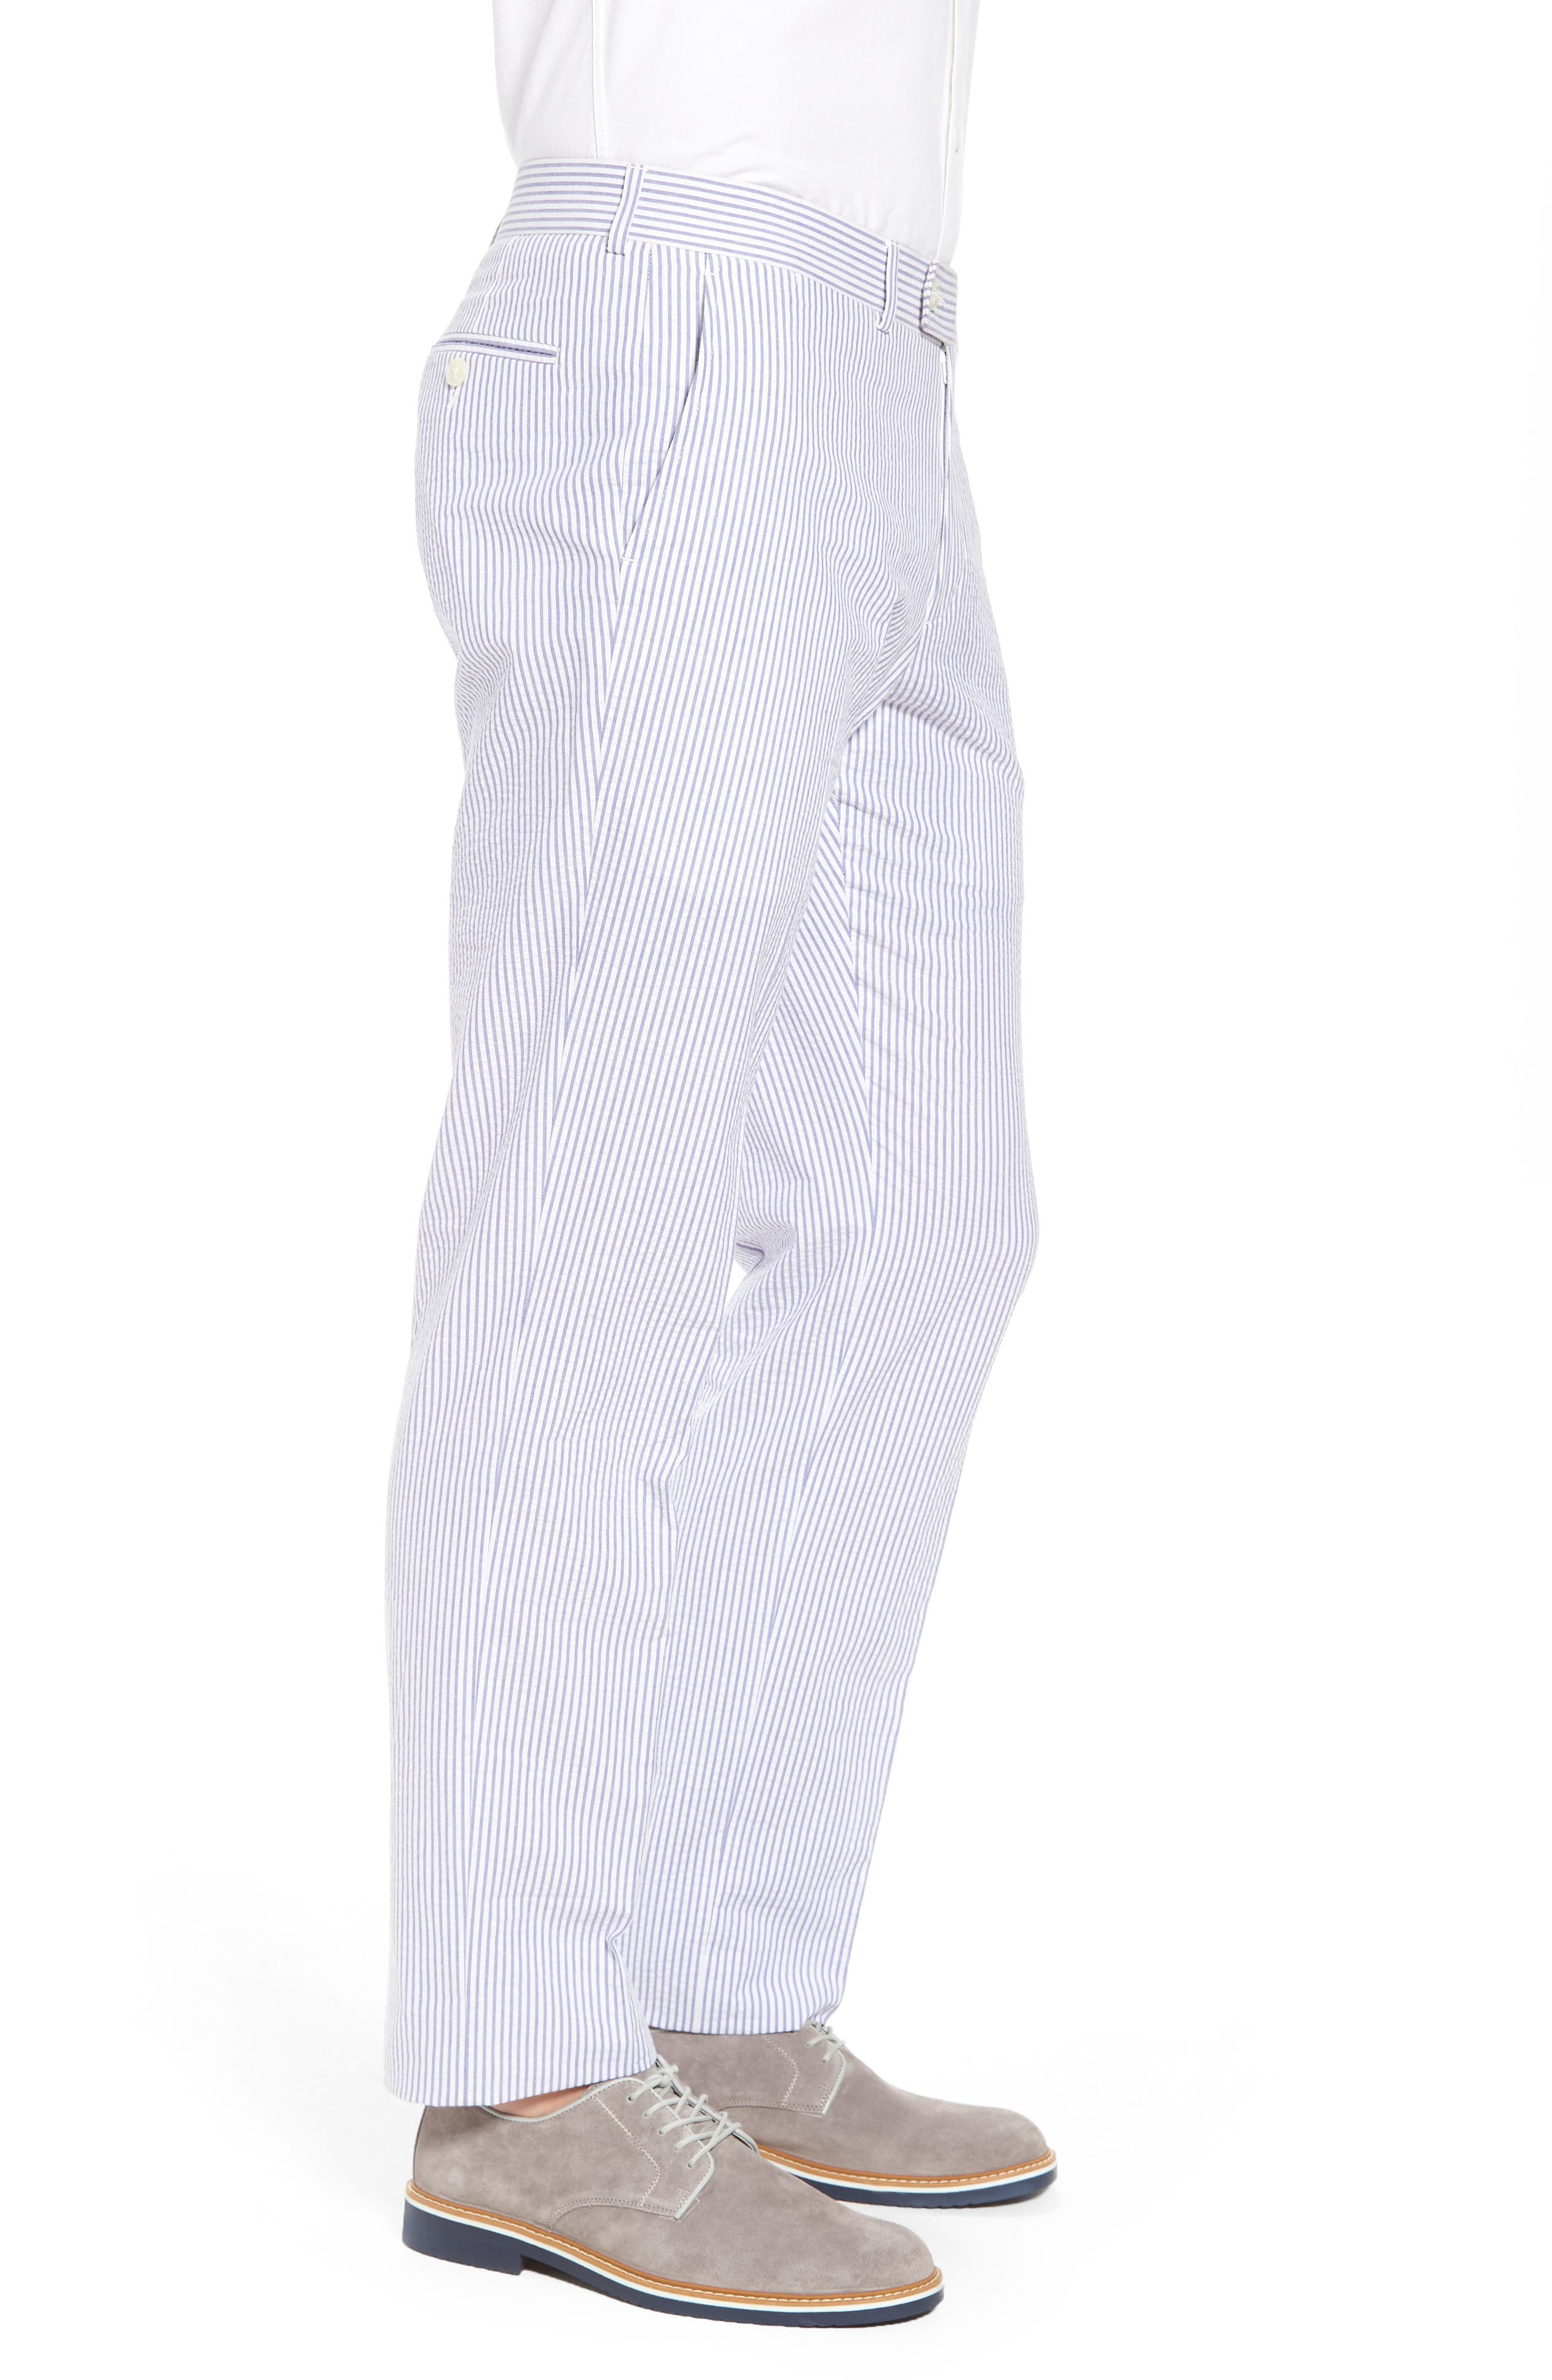 Andrew AIM Flat Front Seersucker Trousers,                             Alternate thumbnail 3, color,                             BLUE AND WHITE